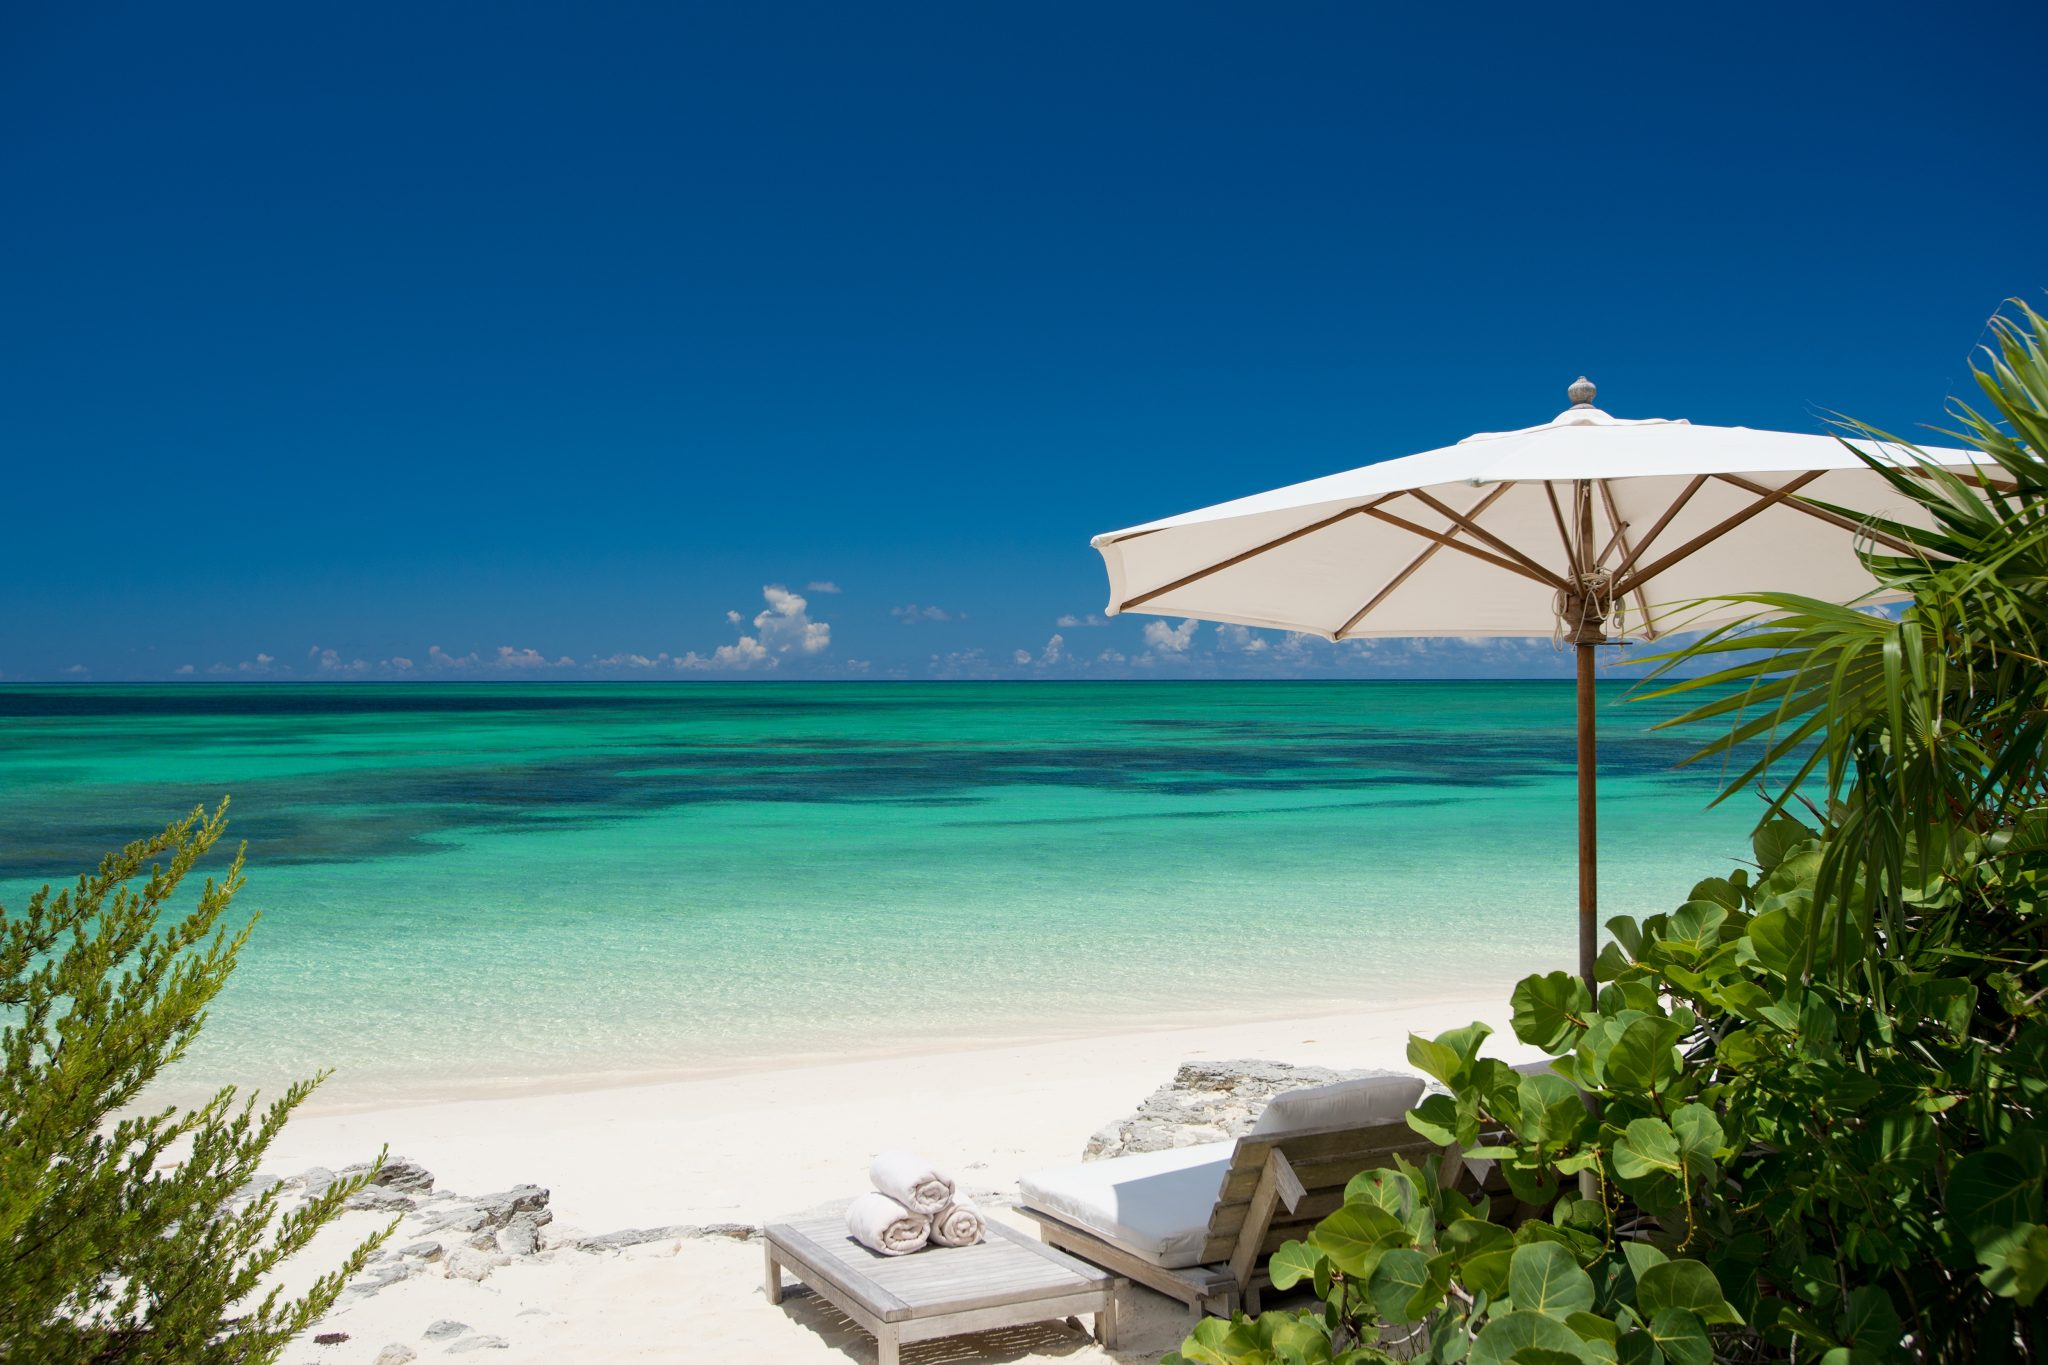 Luxuriate in the Caribbean at COMO Parrot Cay, Turks and